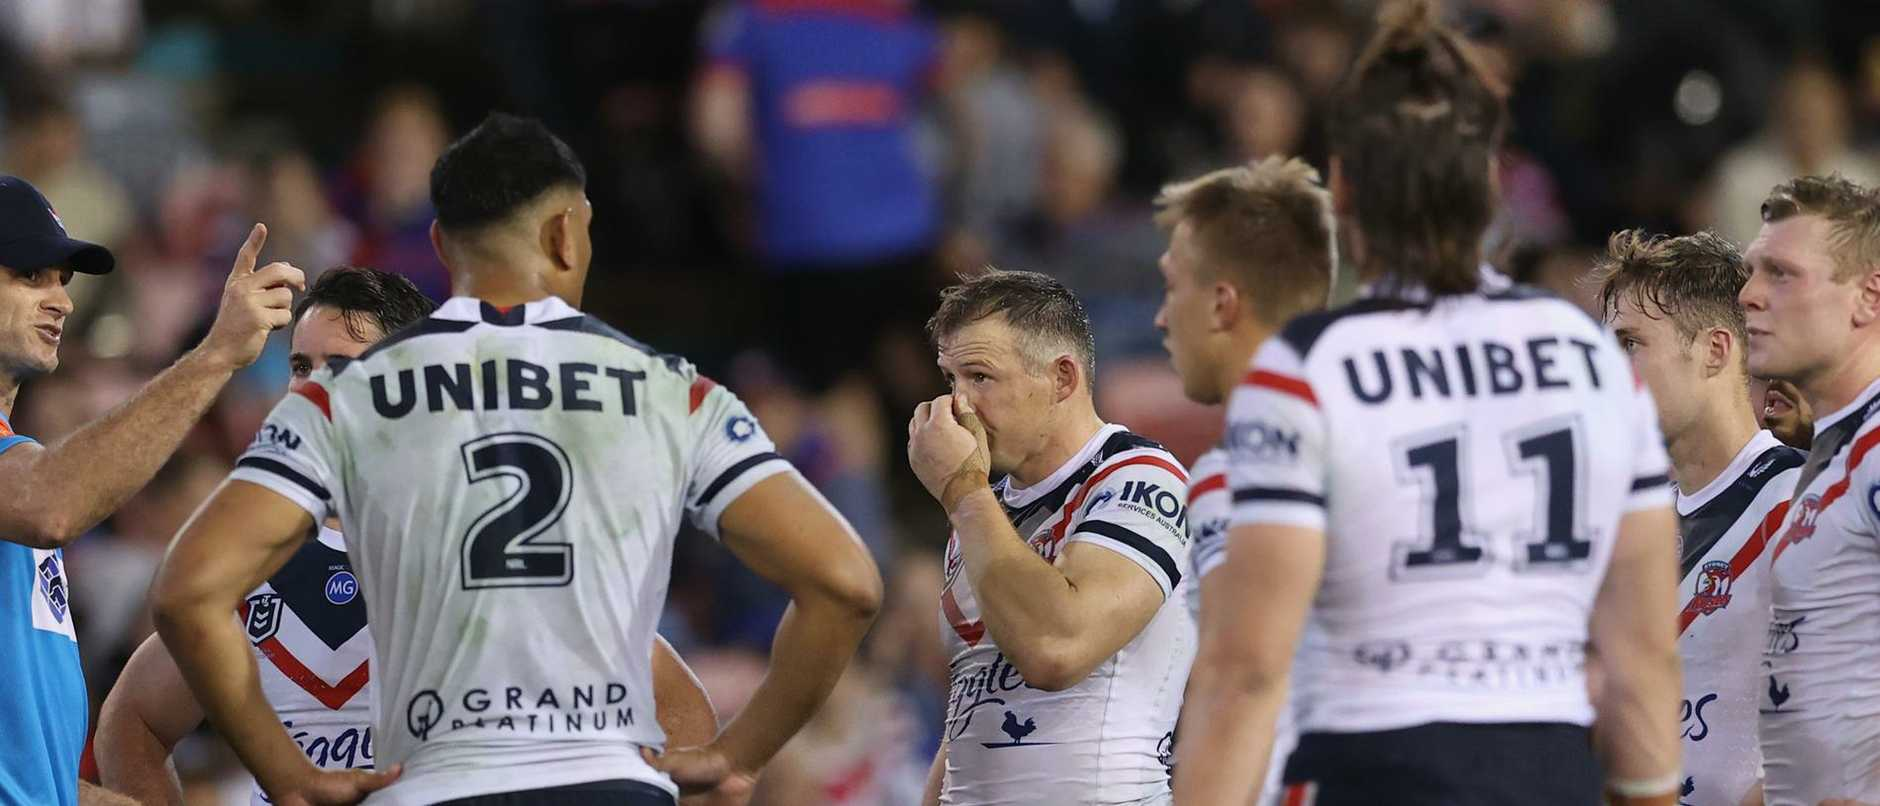 COVID Sydney: Roosters to be tested after positive case visits Moore Park cafe